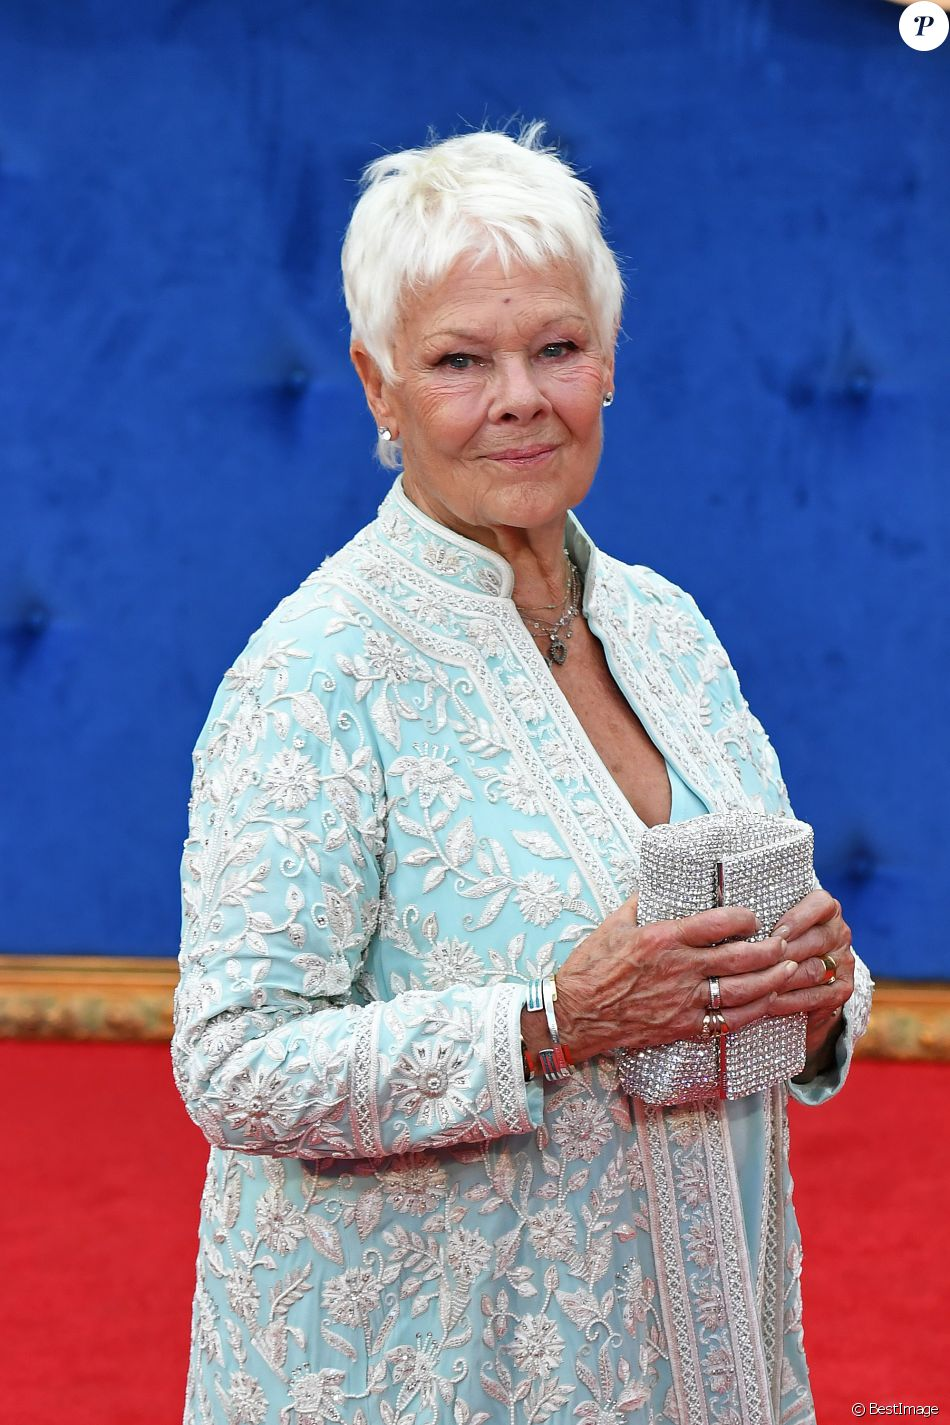 "Judi Dench - Première du film ""Victoria & Abdul "" à Londres le 5 septembre 2017.  Victoria & Abdul UK Film Premiere at the Odeon, Leicester Square, London on september 5, 2017.05/09/2017 - Londres"